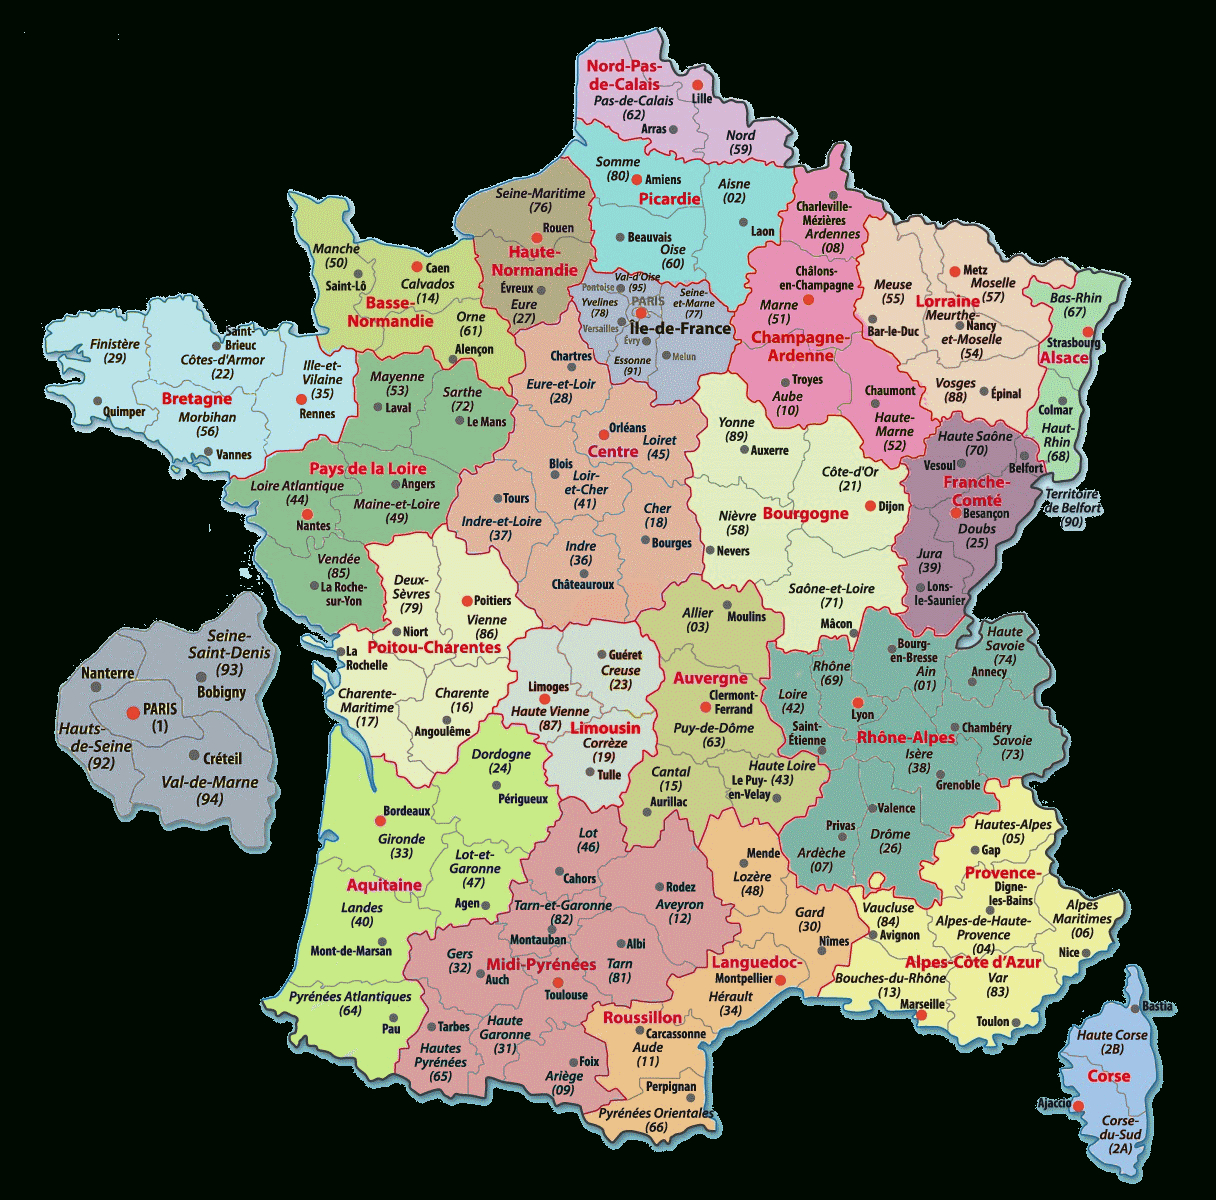 Carte De France Departements : Carte Des Départements De France serapportantà Régions De France Liste